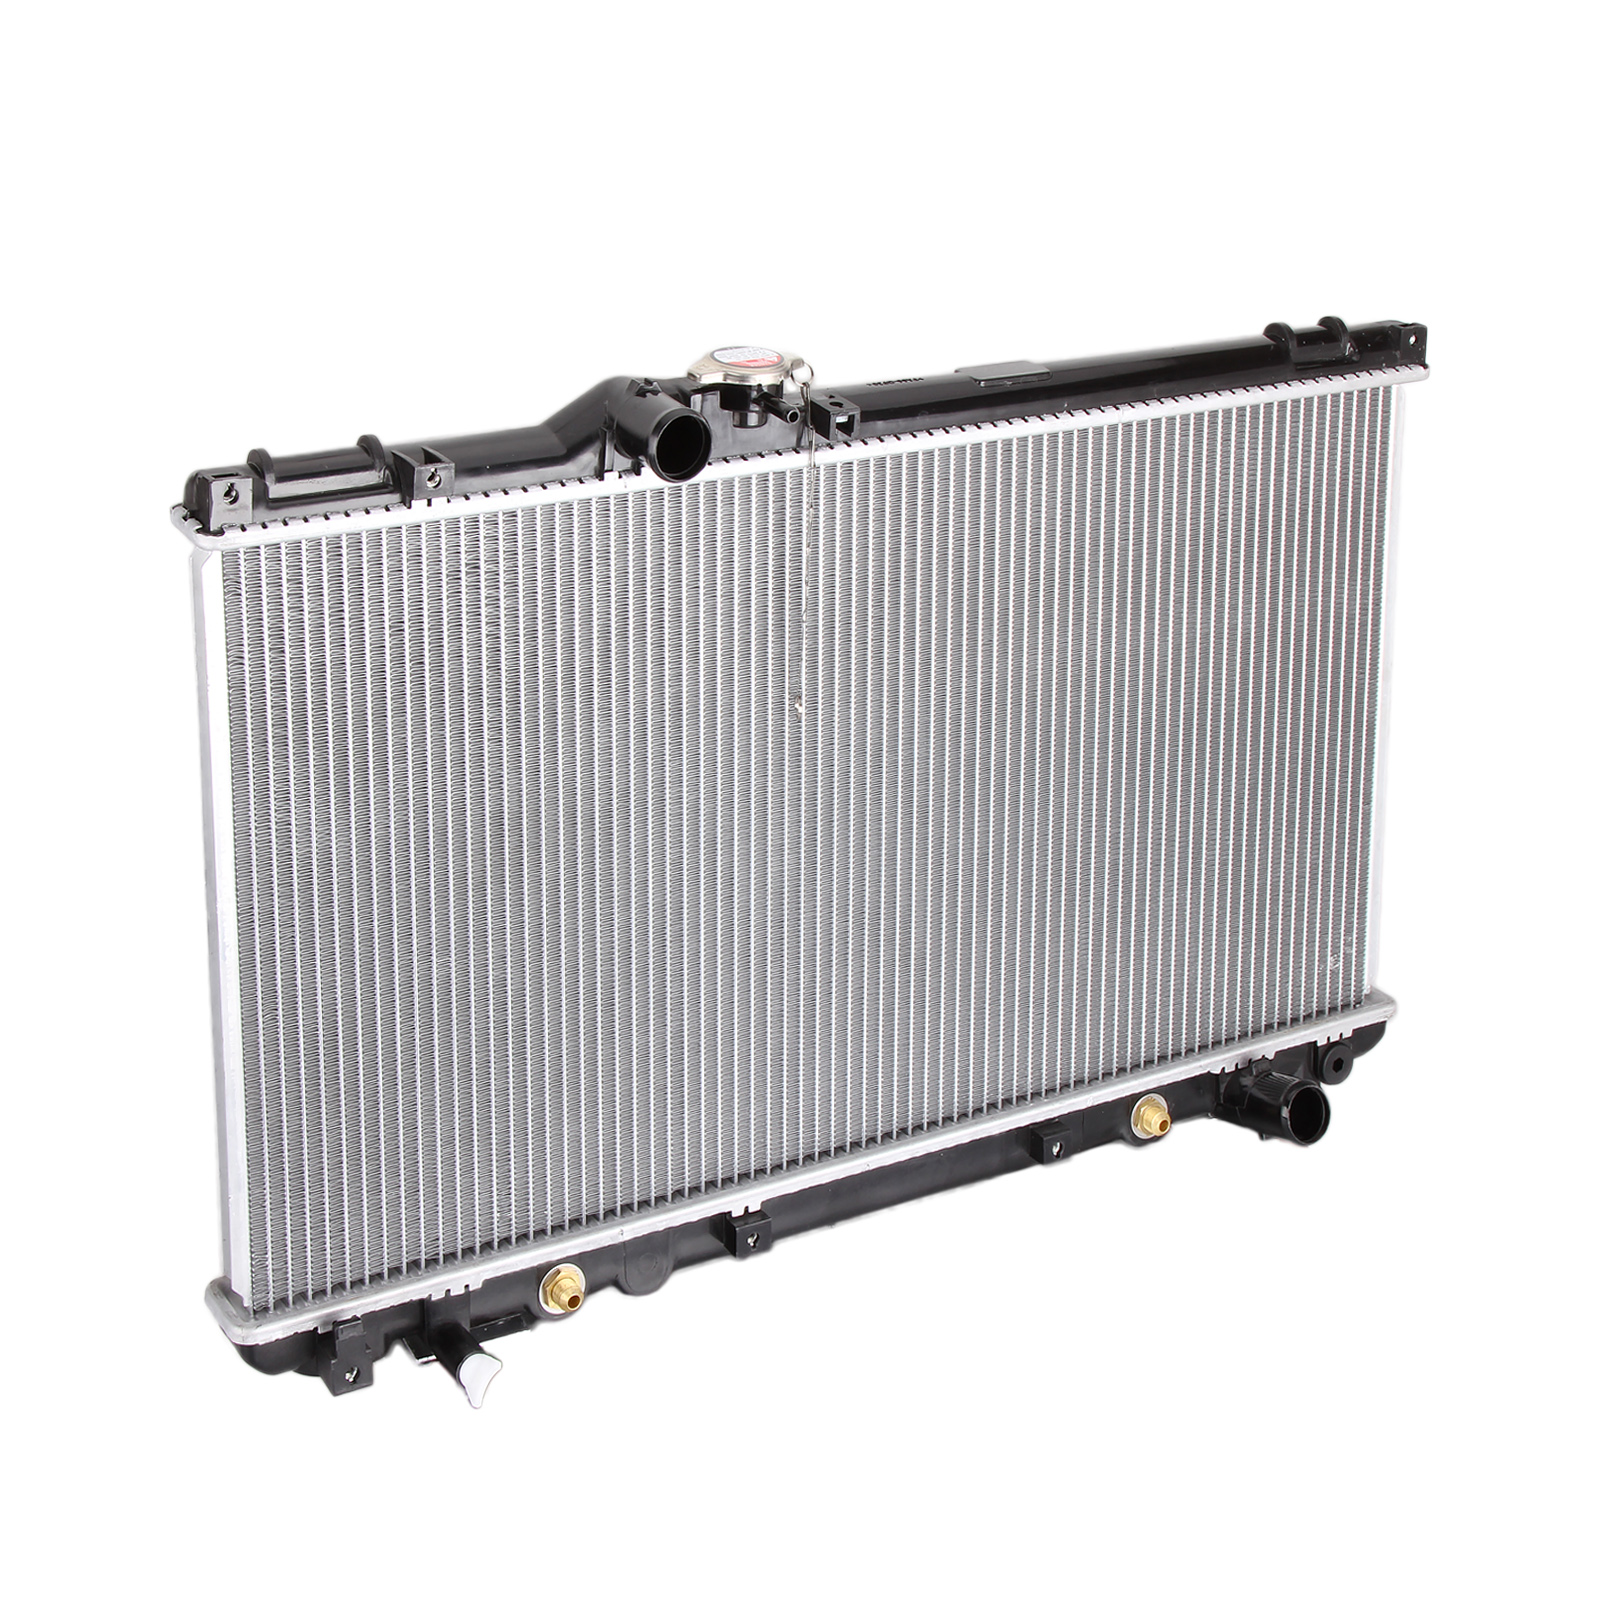 Radiator For Lexus Is 300 Toyota Altezza 30 L Automatic Manual Engine Diagram Cooling Auto